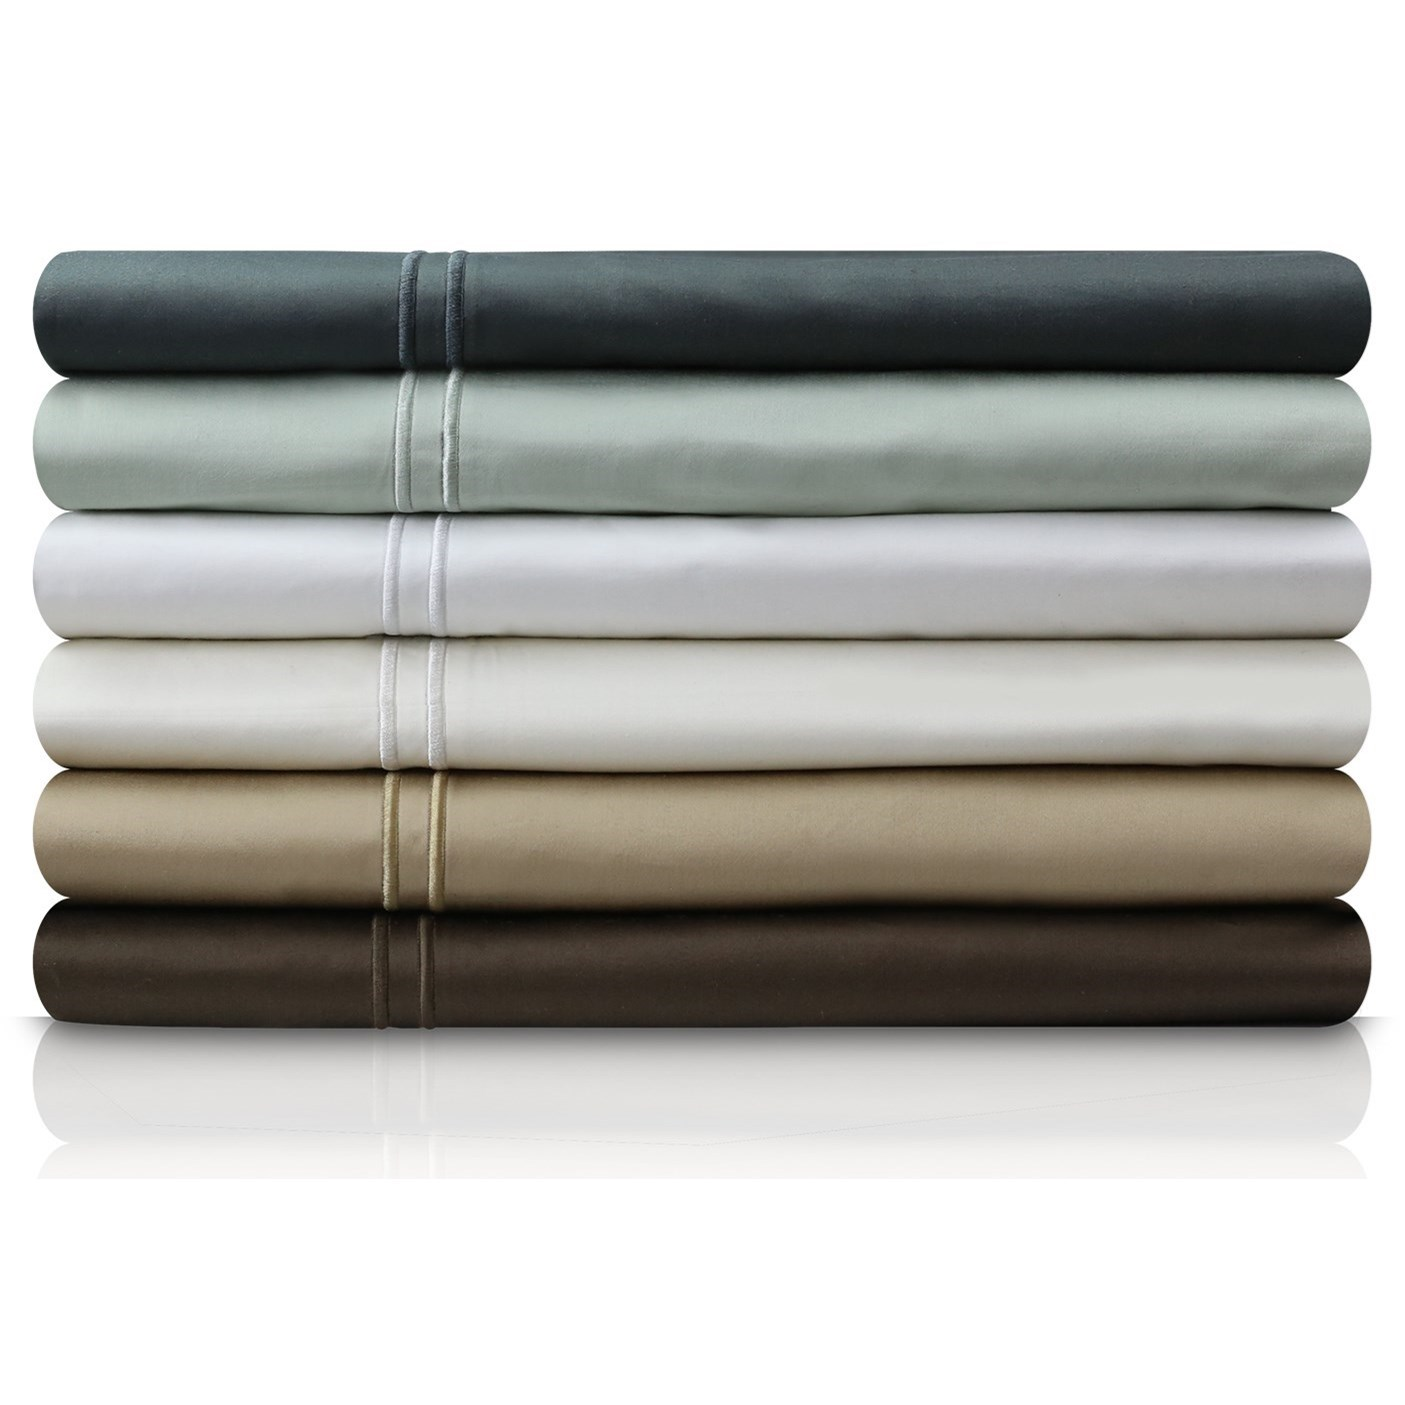 Malouf Egyptian Cotton Standard 600 TC Egyptian Cotton Standard Pil - Item Number: MA06STKHPC